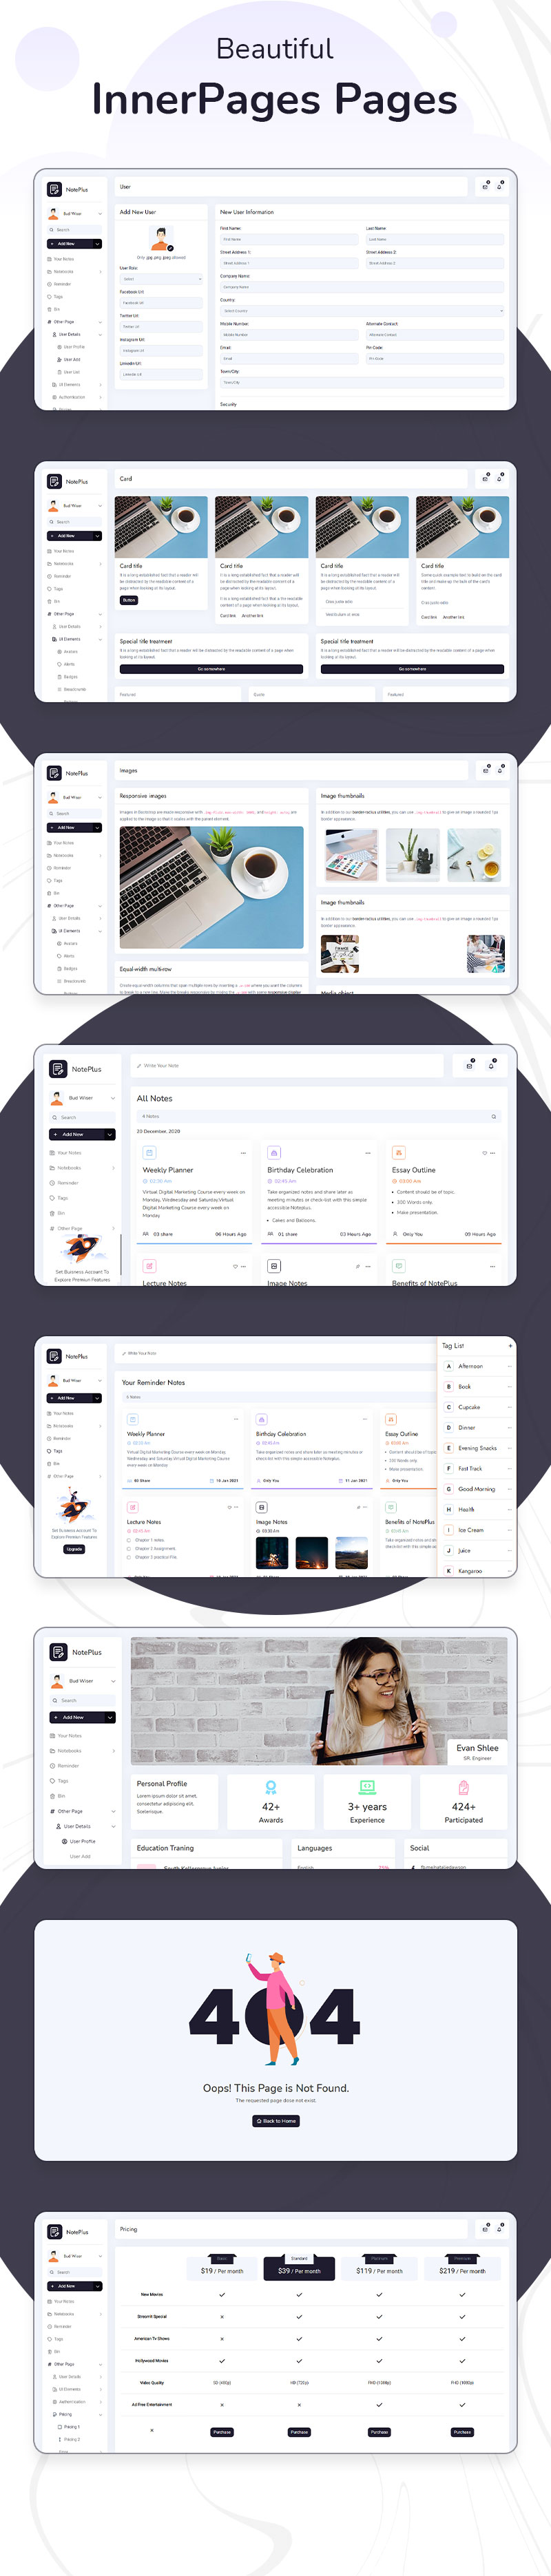 Note taking Webapp Admin Dashboard Template | Noteplus | Iqonic Design vuejs laravel and html note taking admin template Noteplus 4